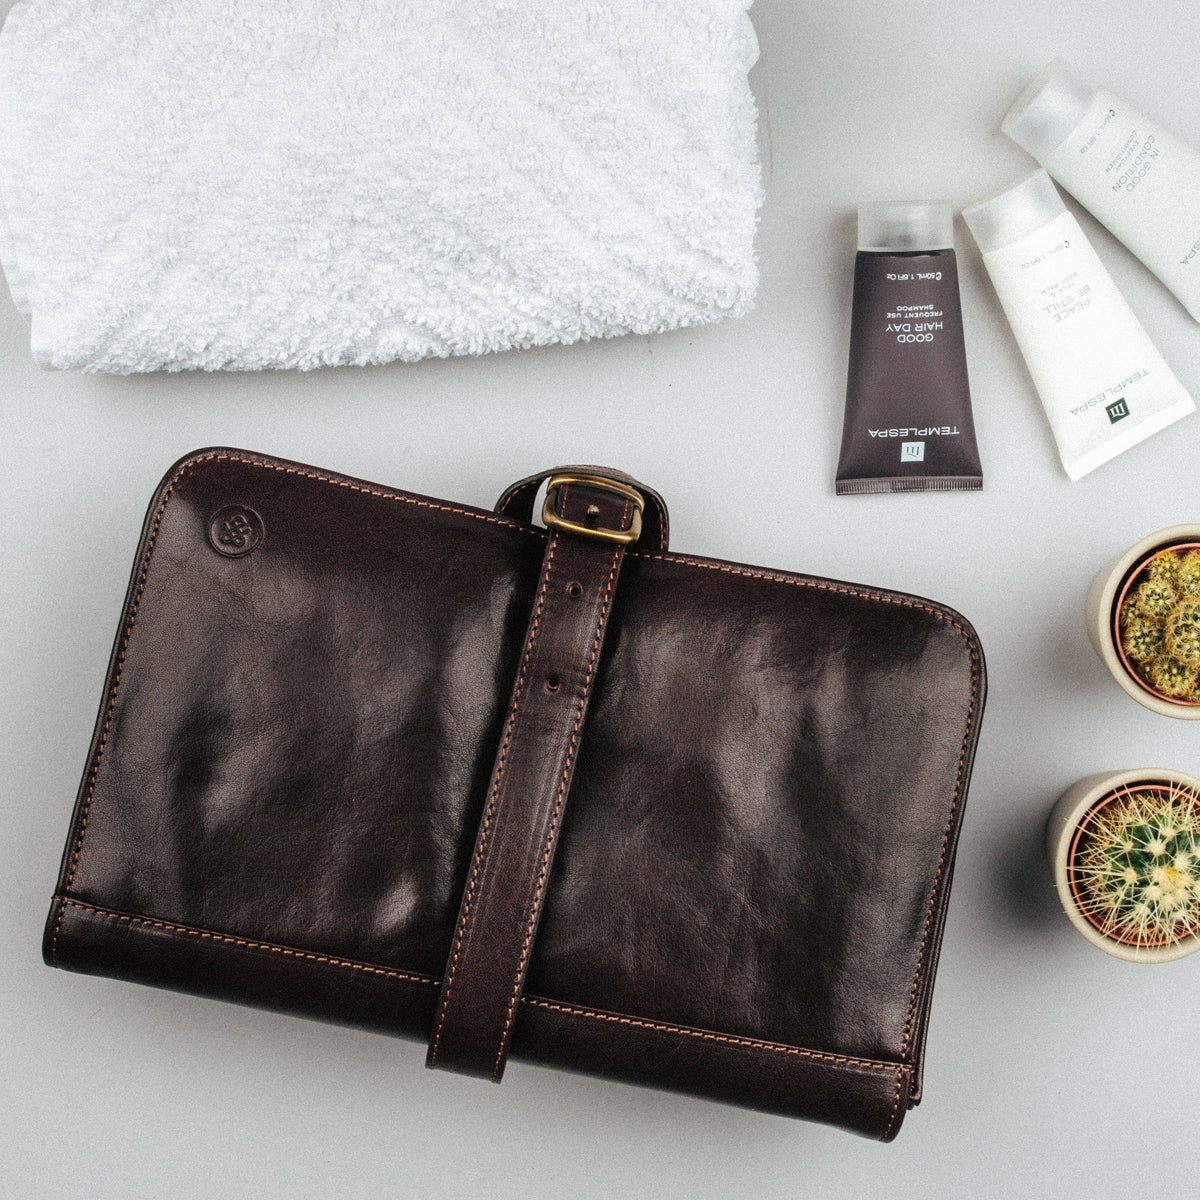 Image 8 of the 'Pratello' Dark Chocolate Veg-Tanned Leather Wash Bag